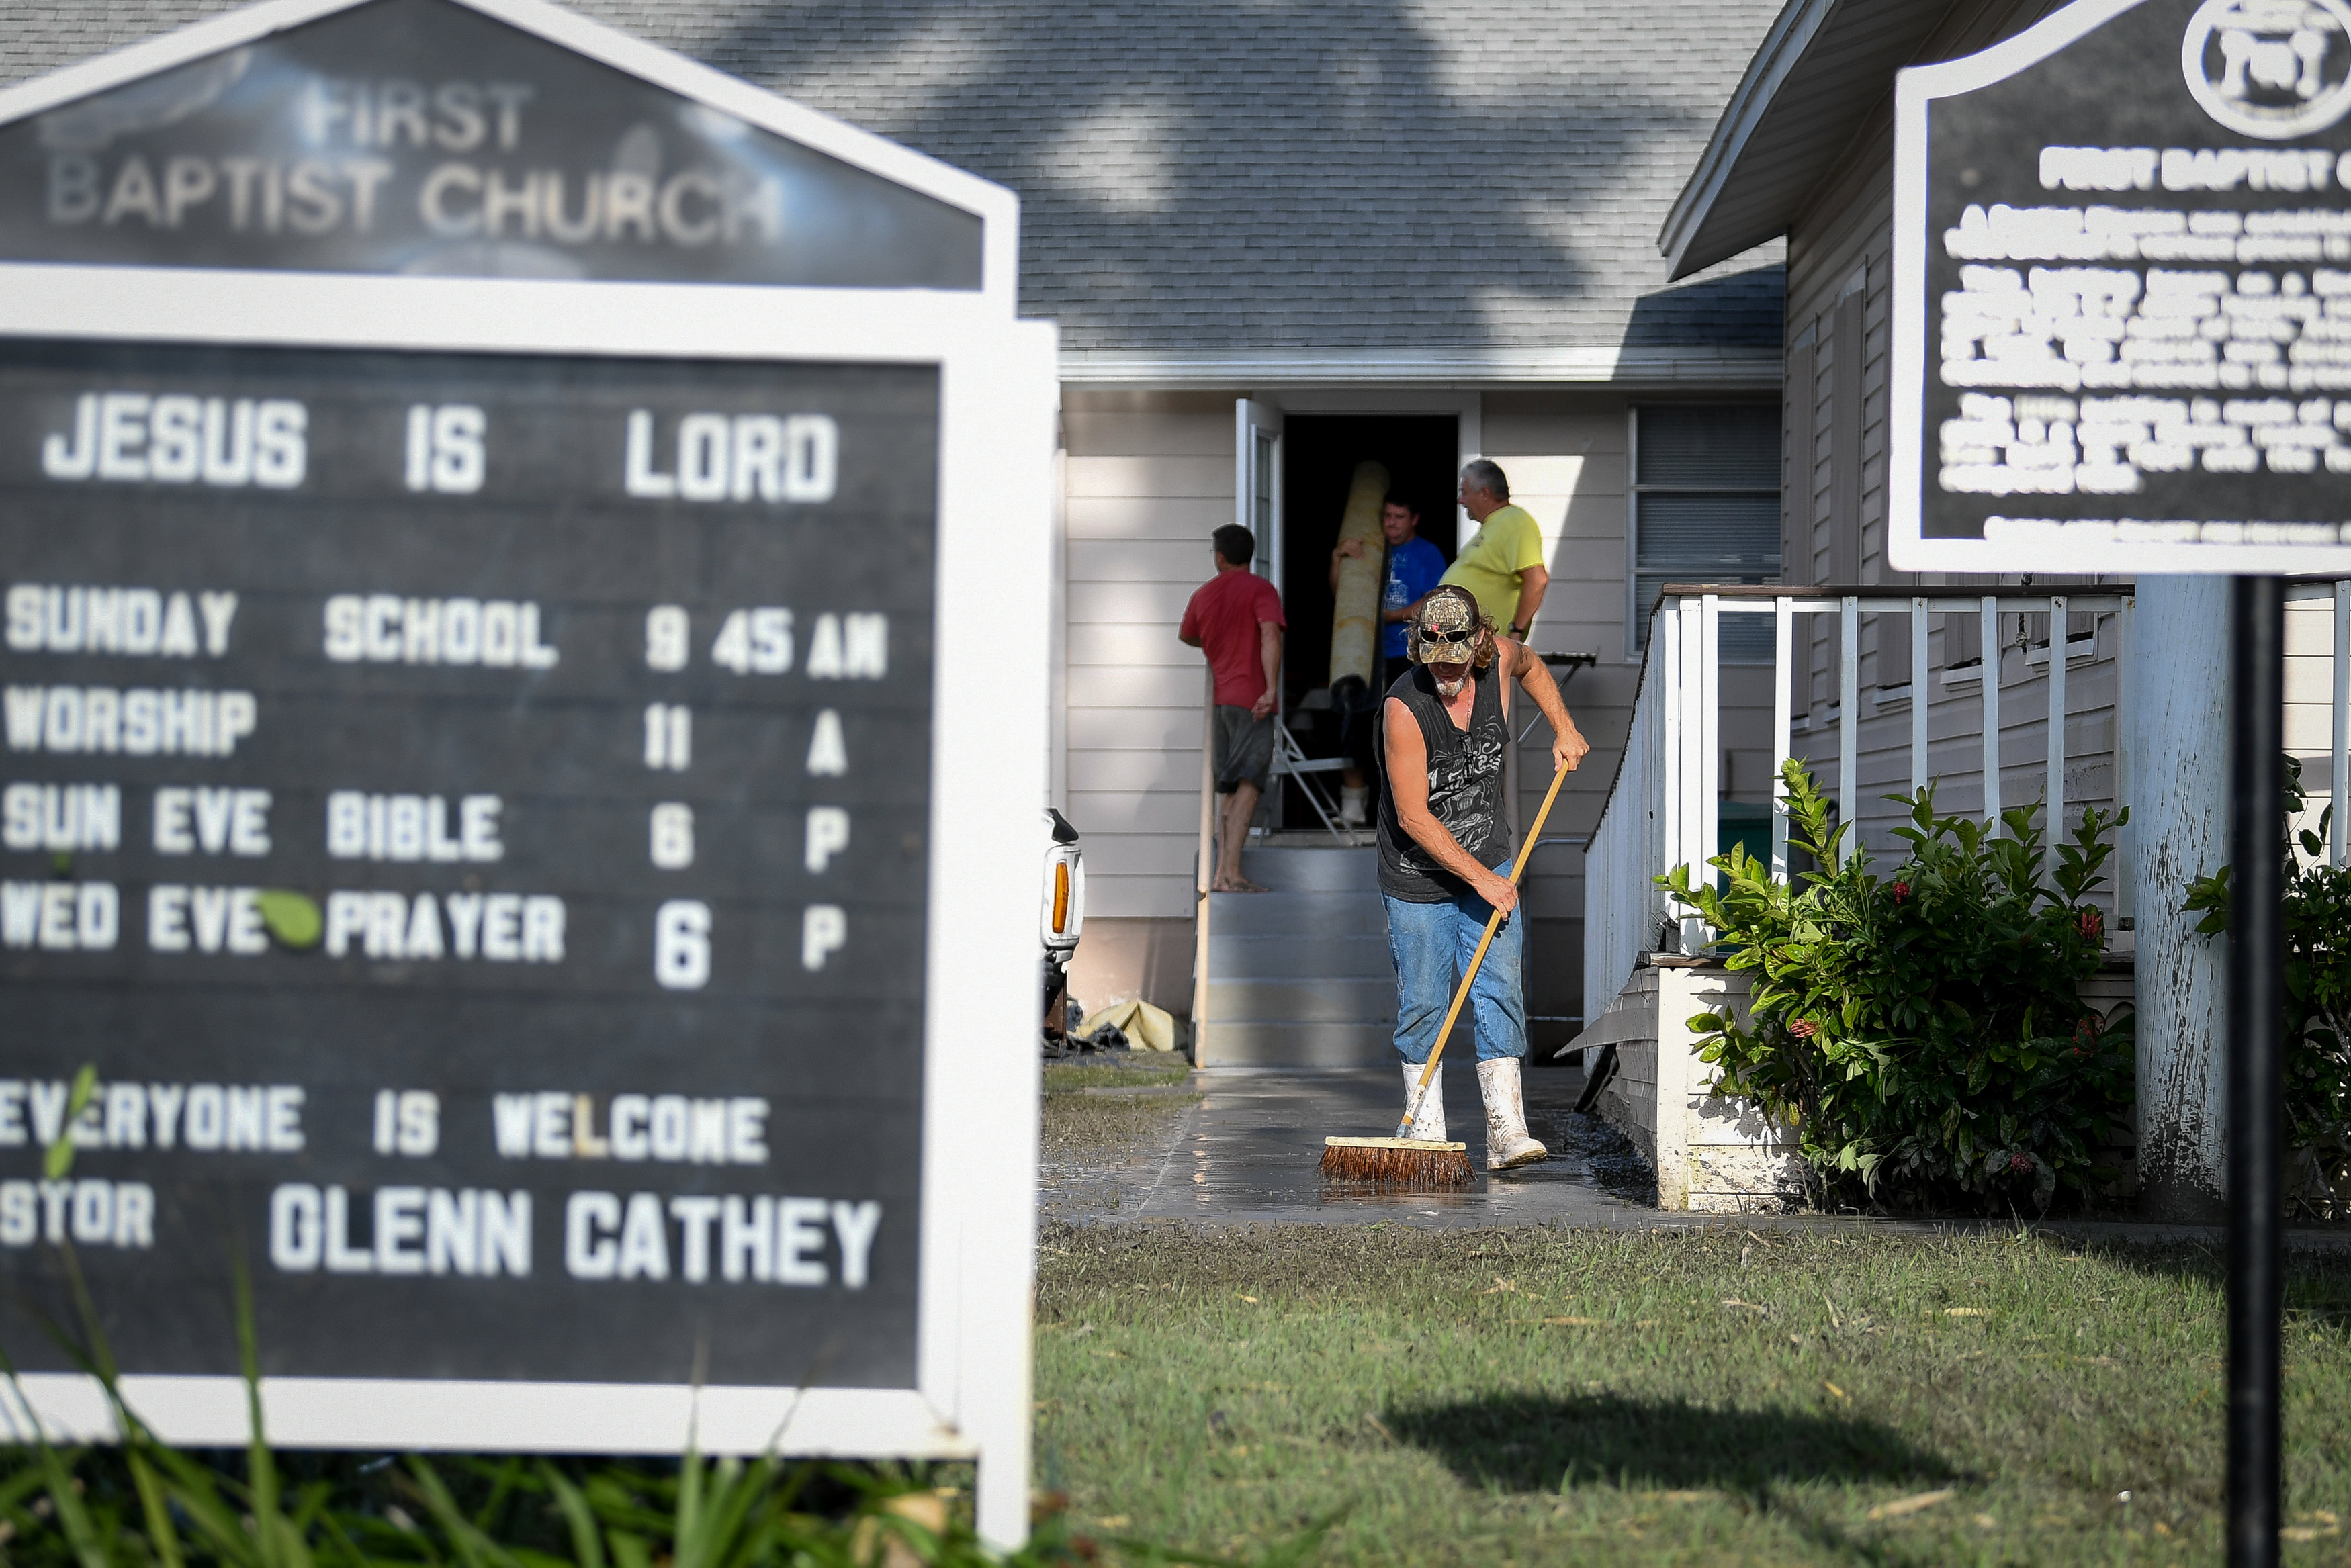 Residents clean up after Hurricane Irma heavily damaged the First Baptist Church in Everglades City, Florida on Sept. 11, 2017. (REUTERS/Bryan Woolston)